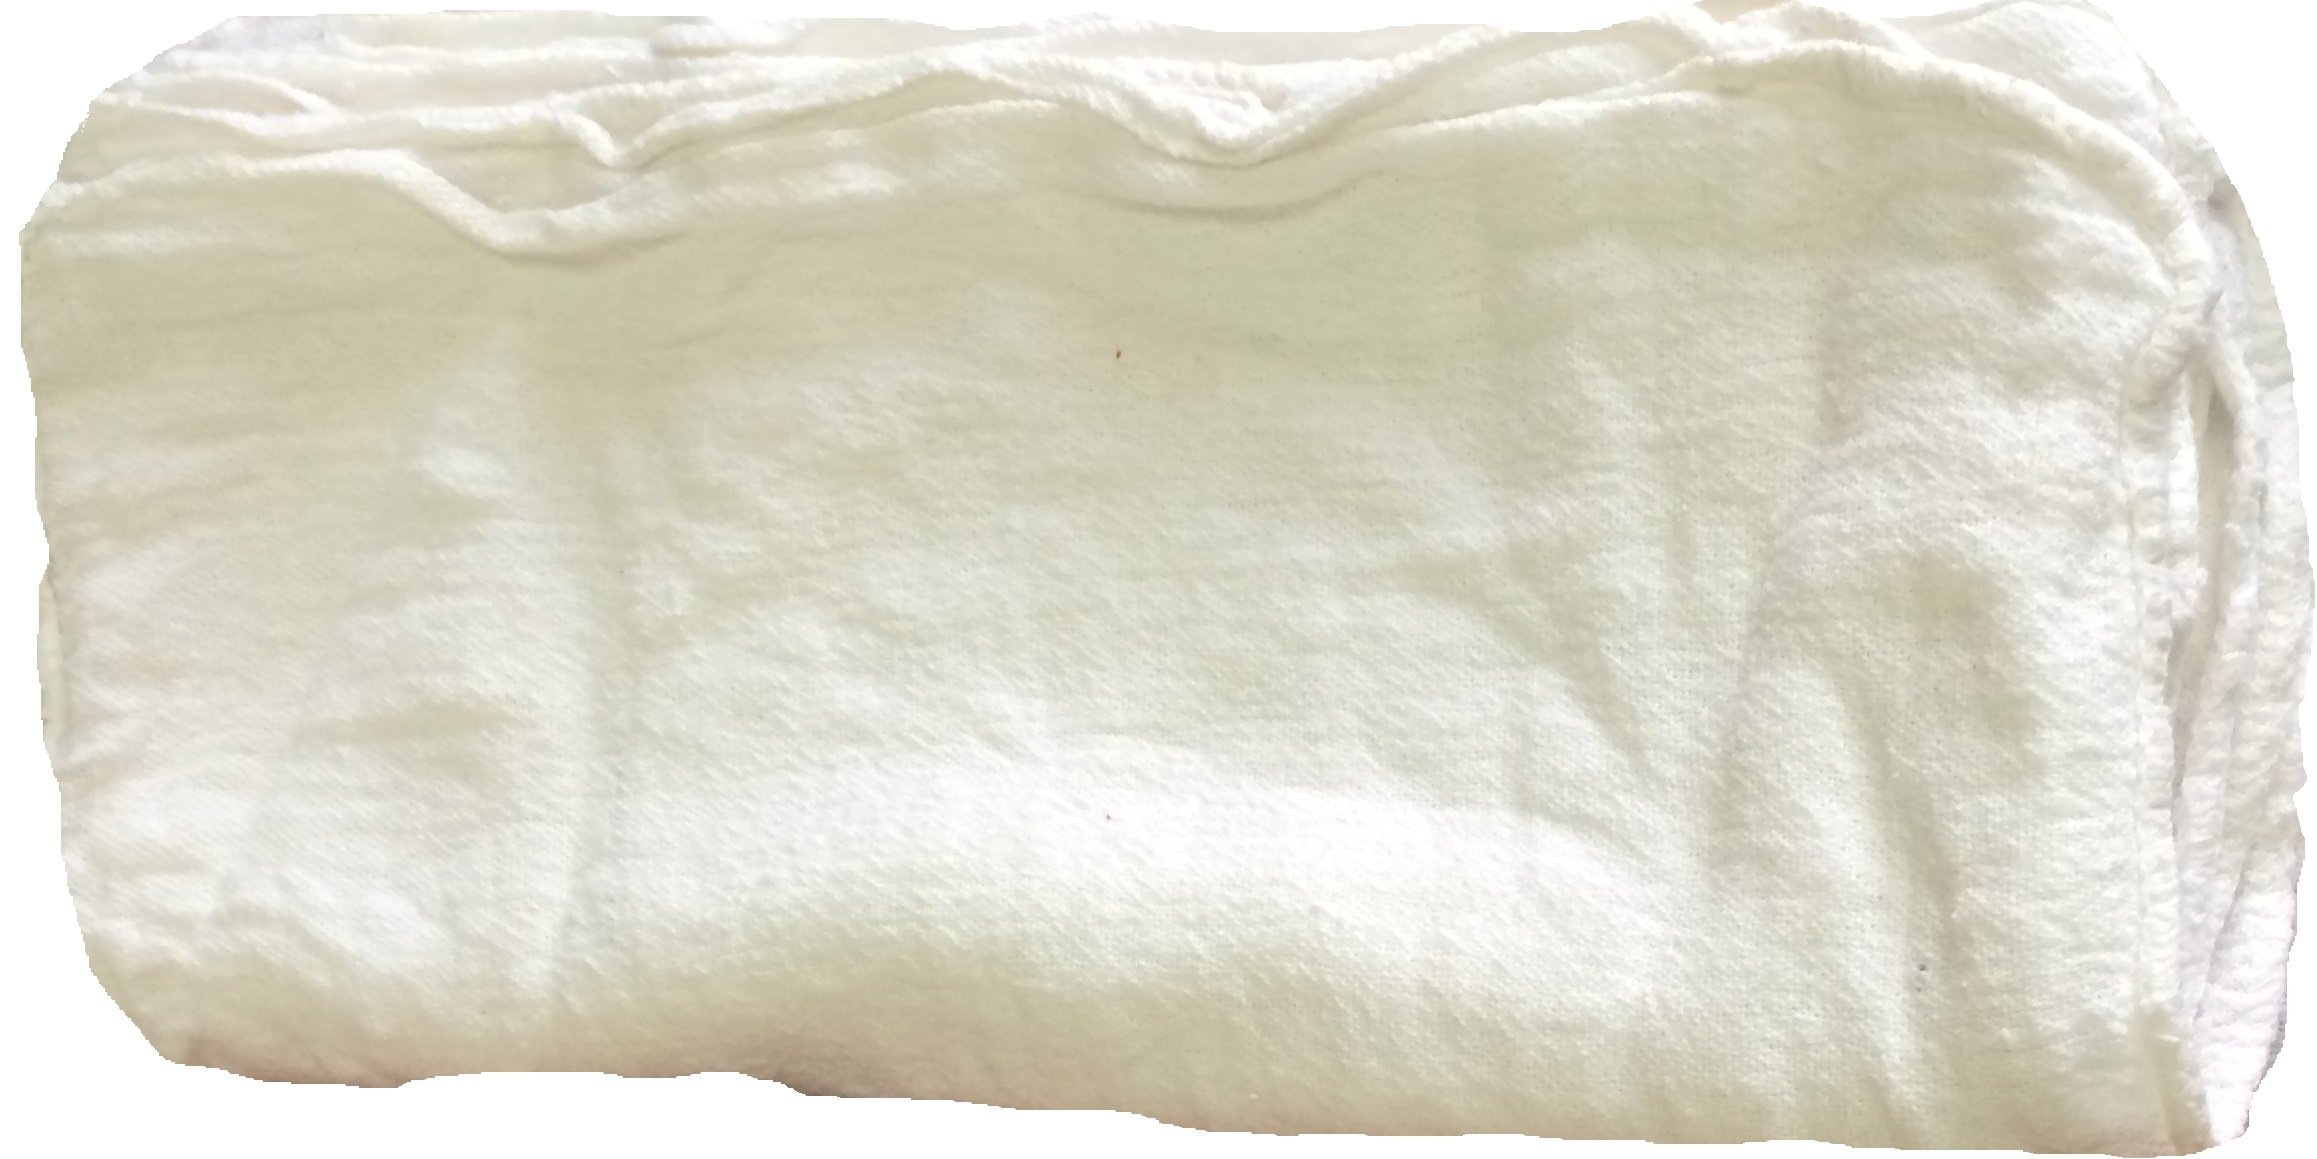 ATLAS Cotton Auto Shop Towels, 2,500-Pieces, White